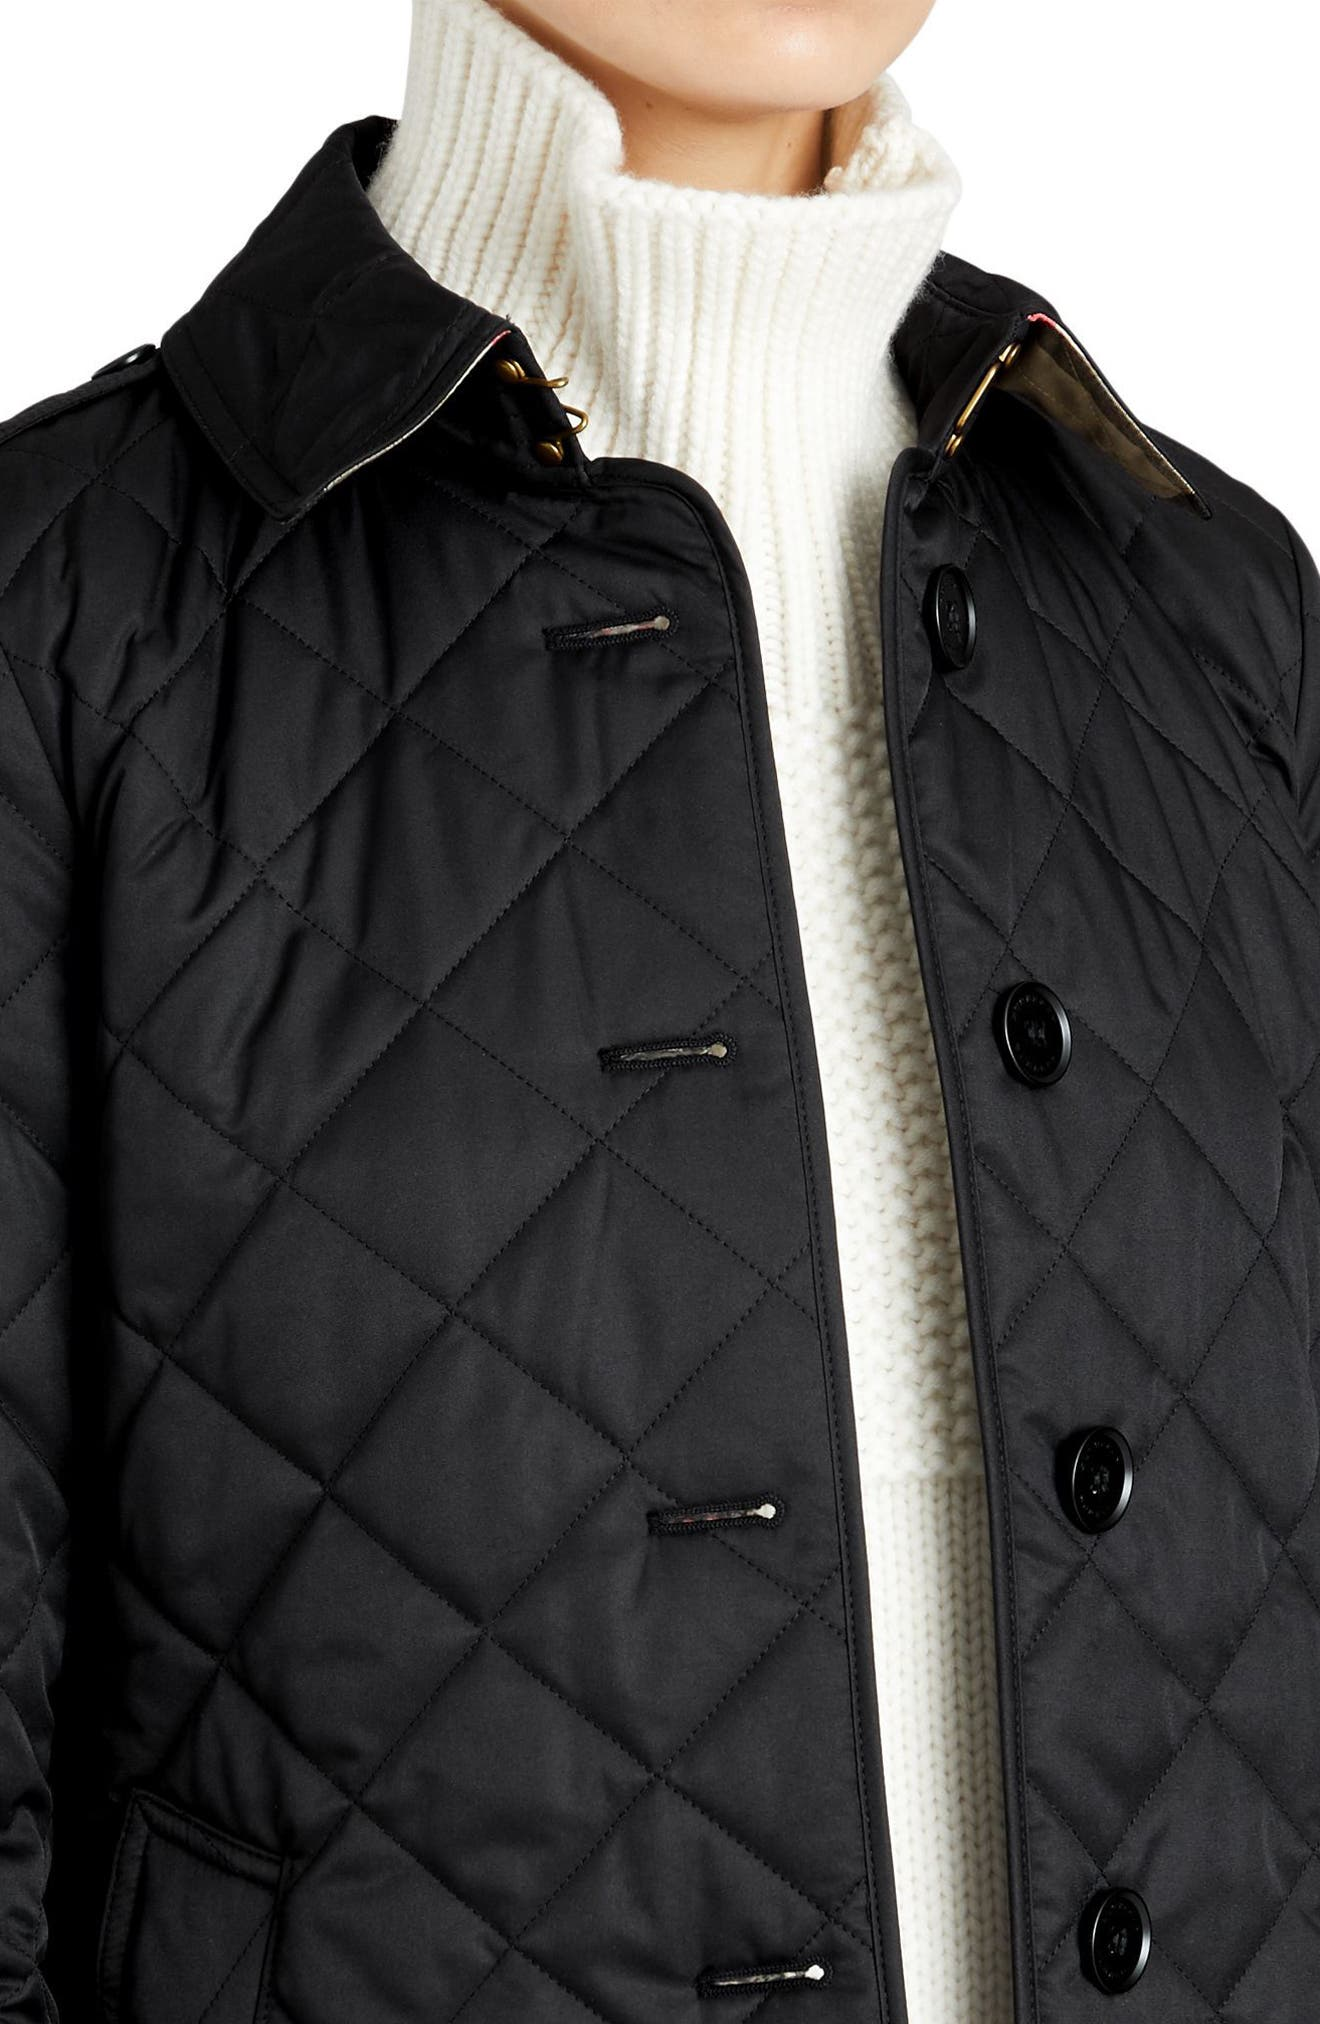 BURBERRY, Frankby Quilted Jacket, Alternate thumbnail 4, color, 001